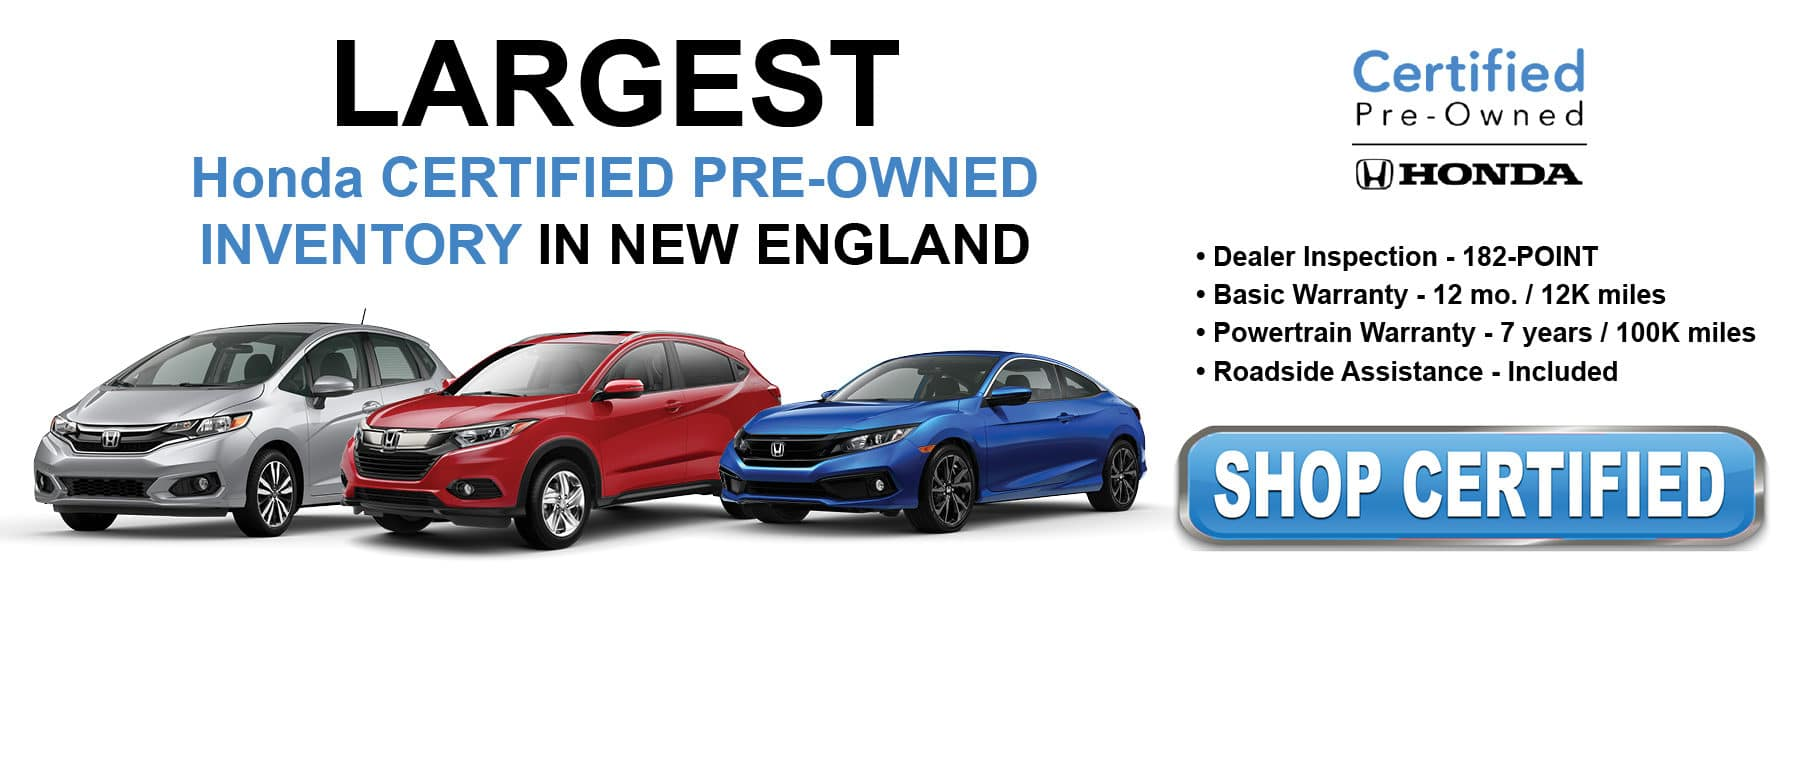 Shop Certified Pre-Owned Inventory at Kelly Honda